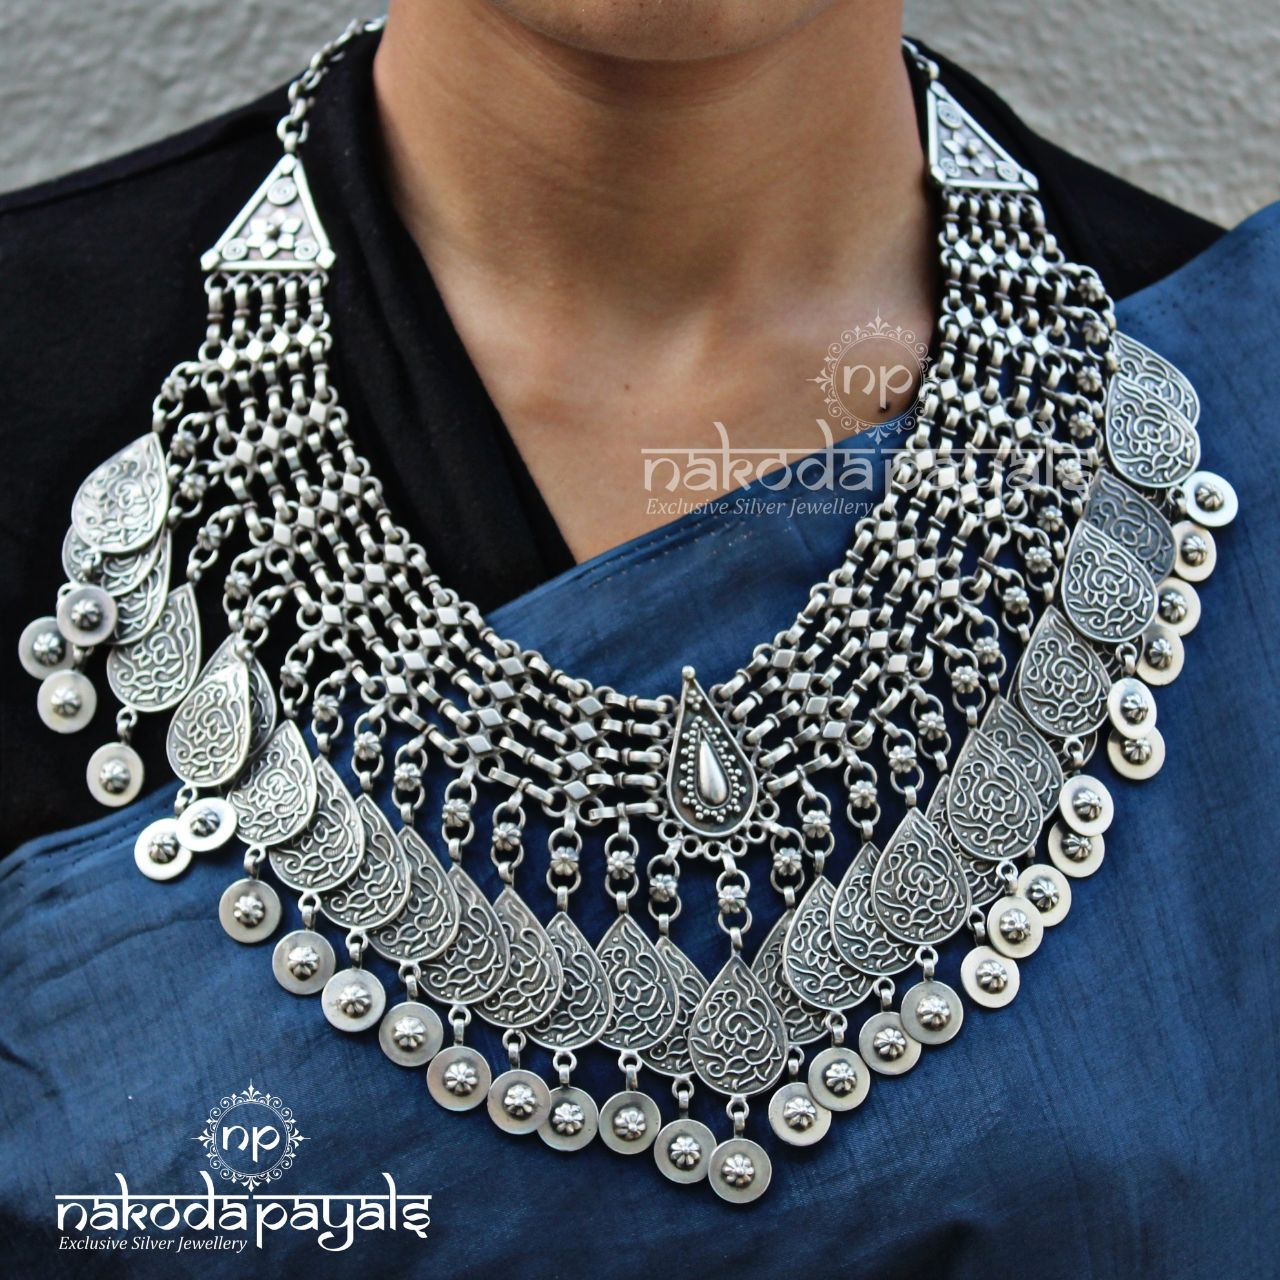 Cherished Charms Tribal Neckpiece